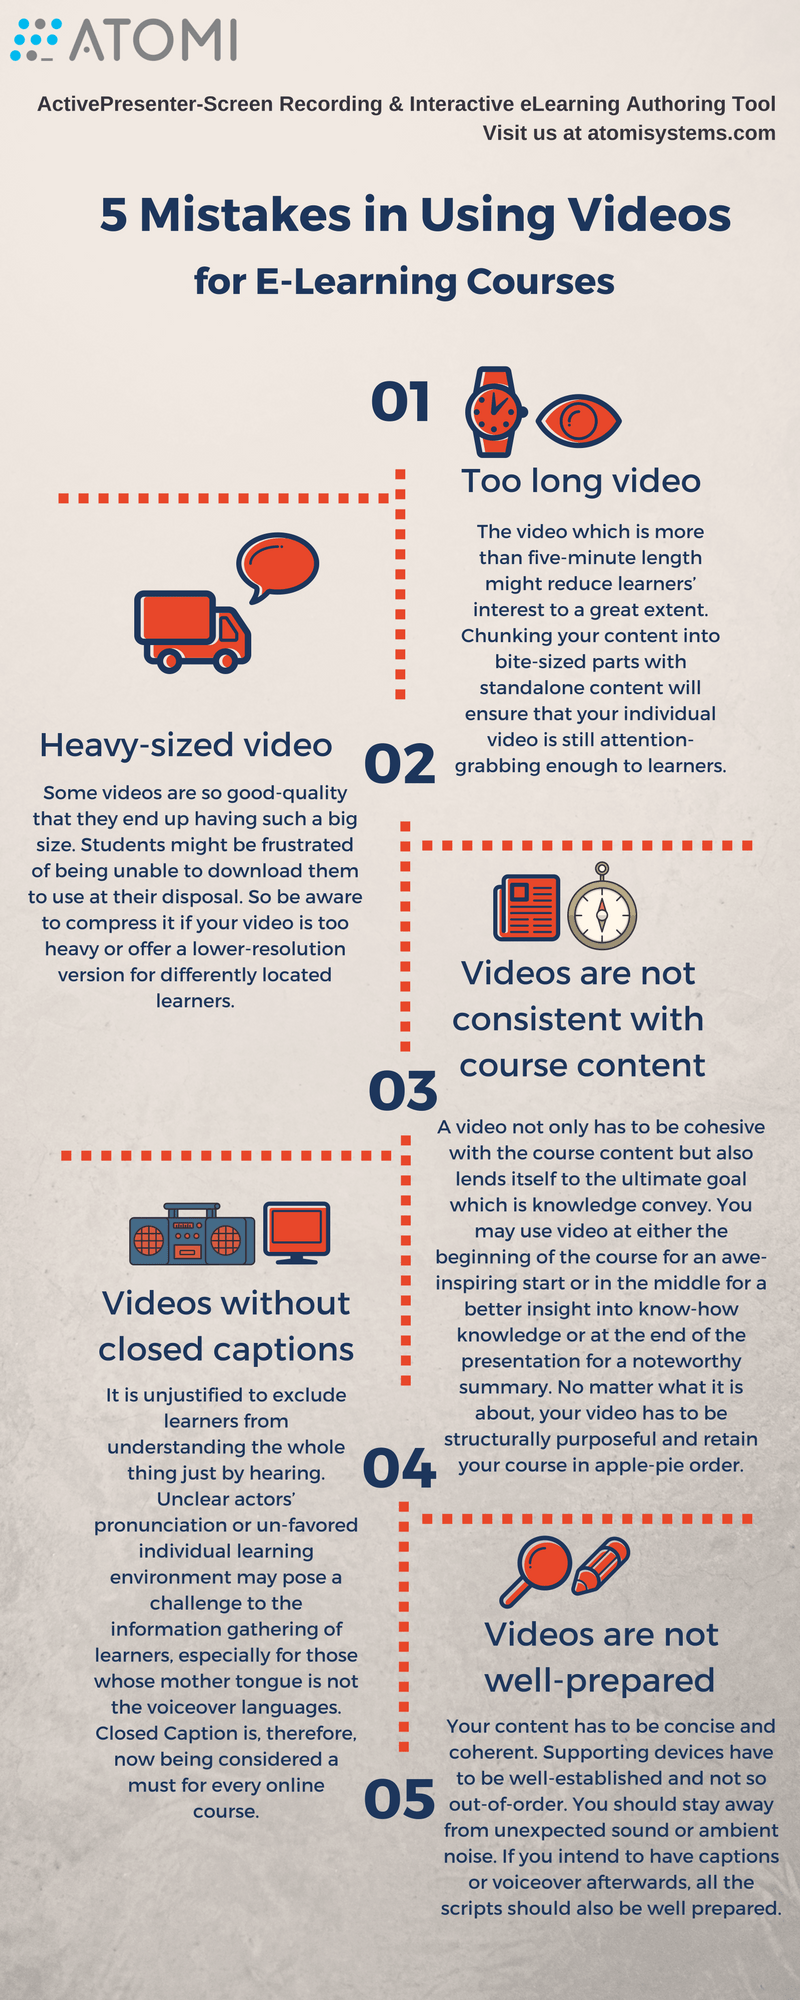 video-mistakes-infographic